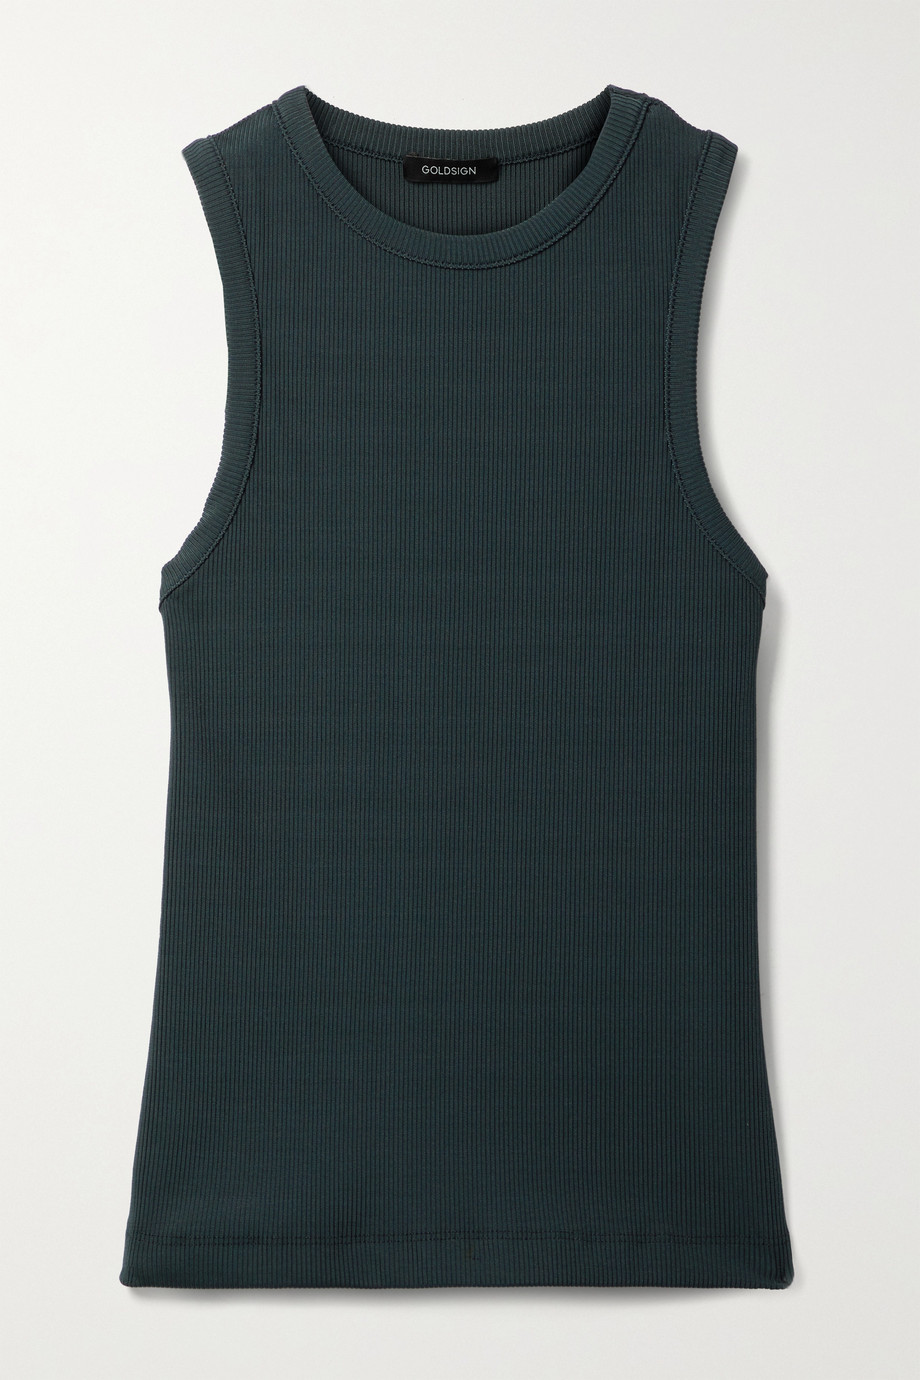 GOLDSIGN + NET SUSTAIN ribbed stretch-jersey tank